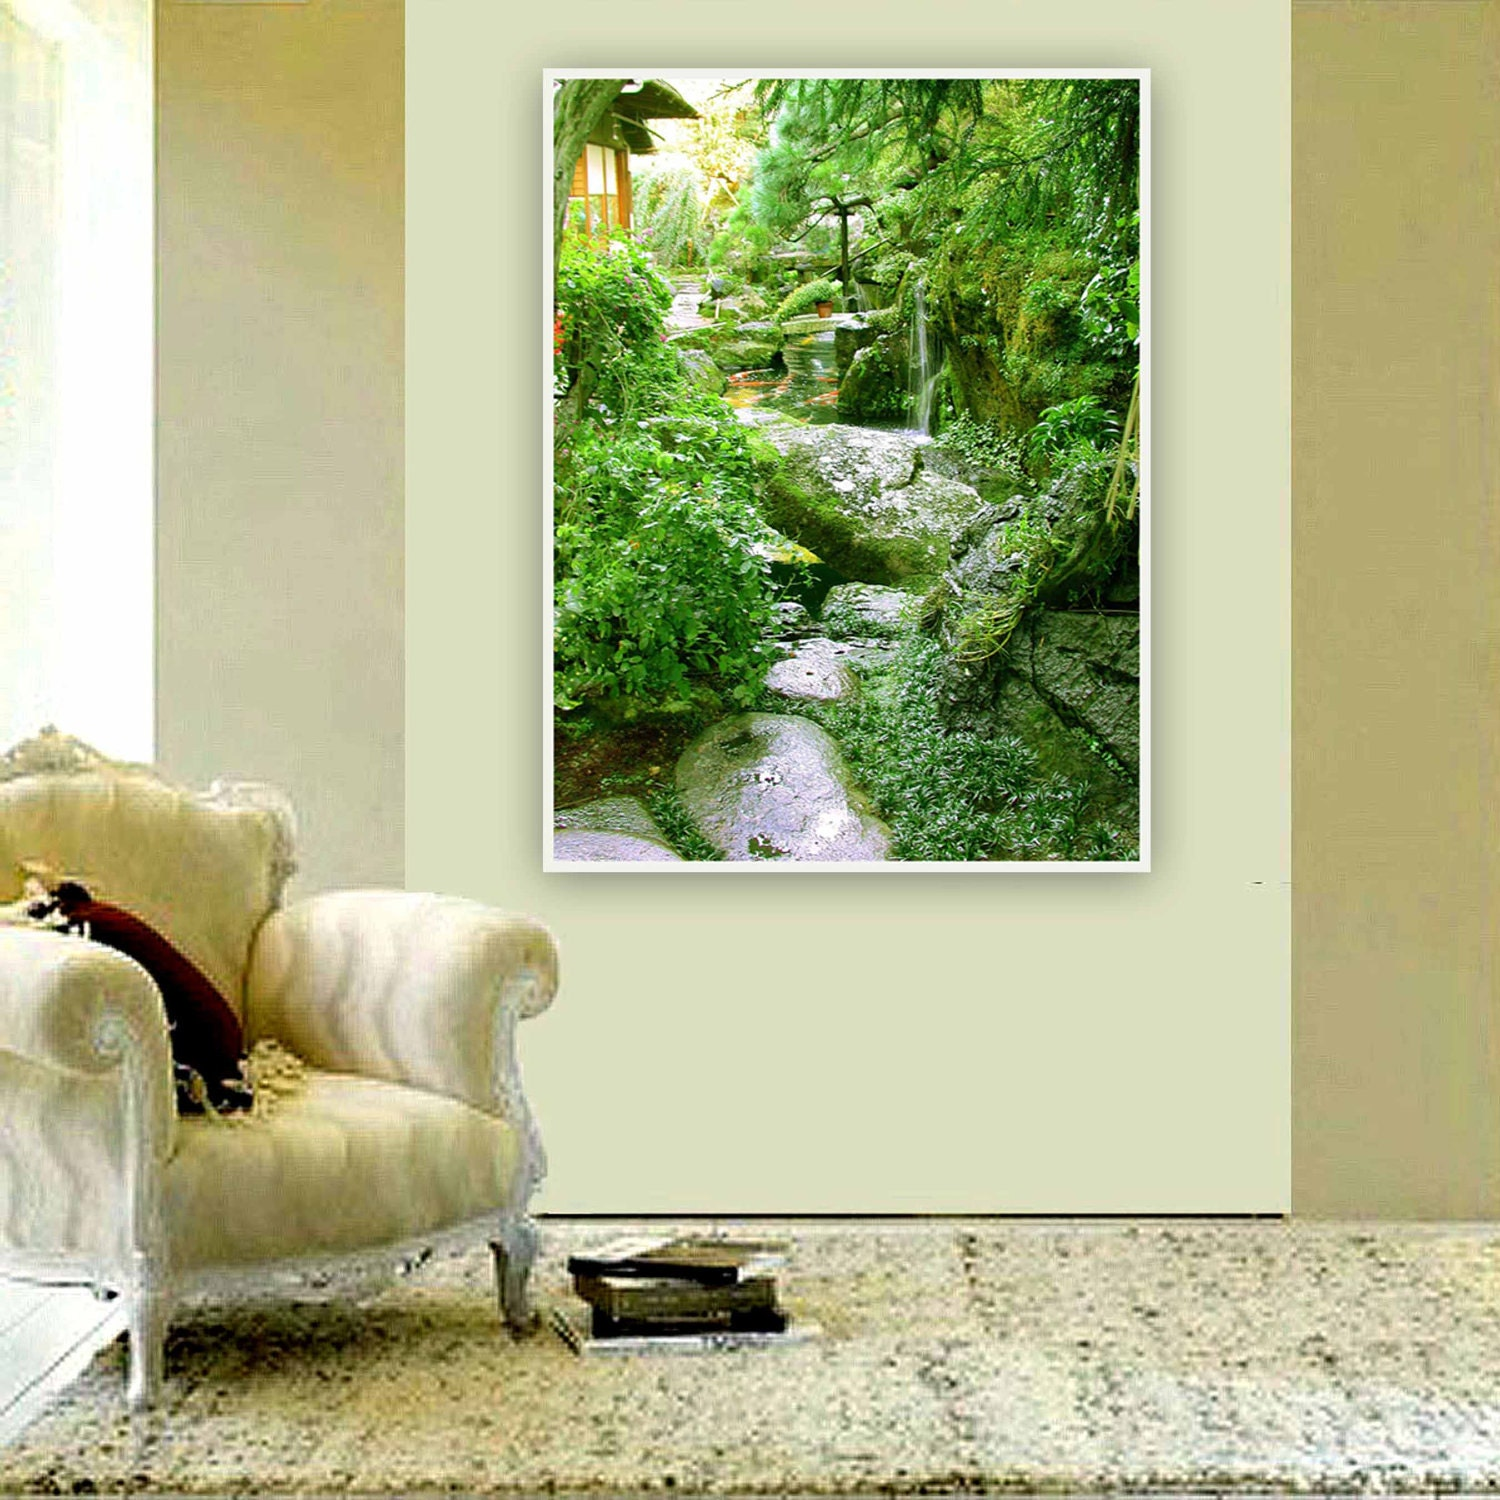 Photography 8 x 10 modern wall art decor feng shui for Home decor zen